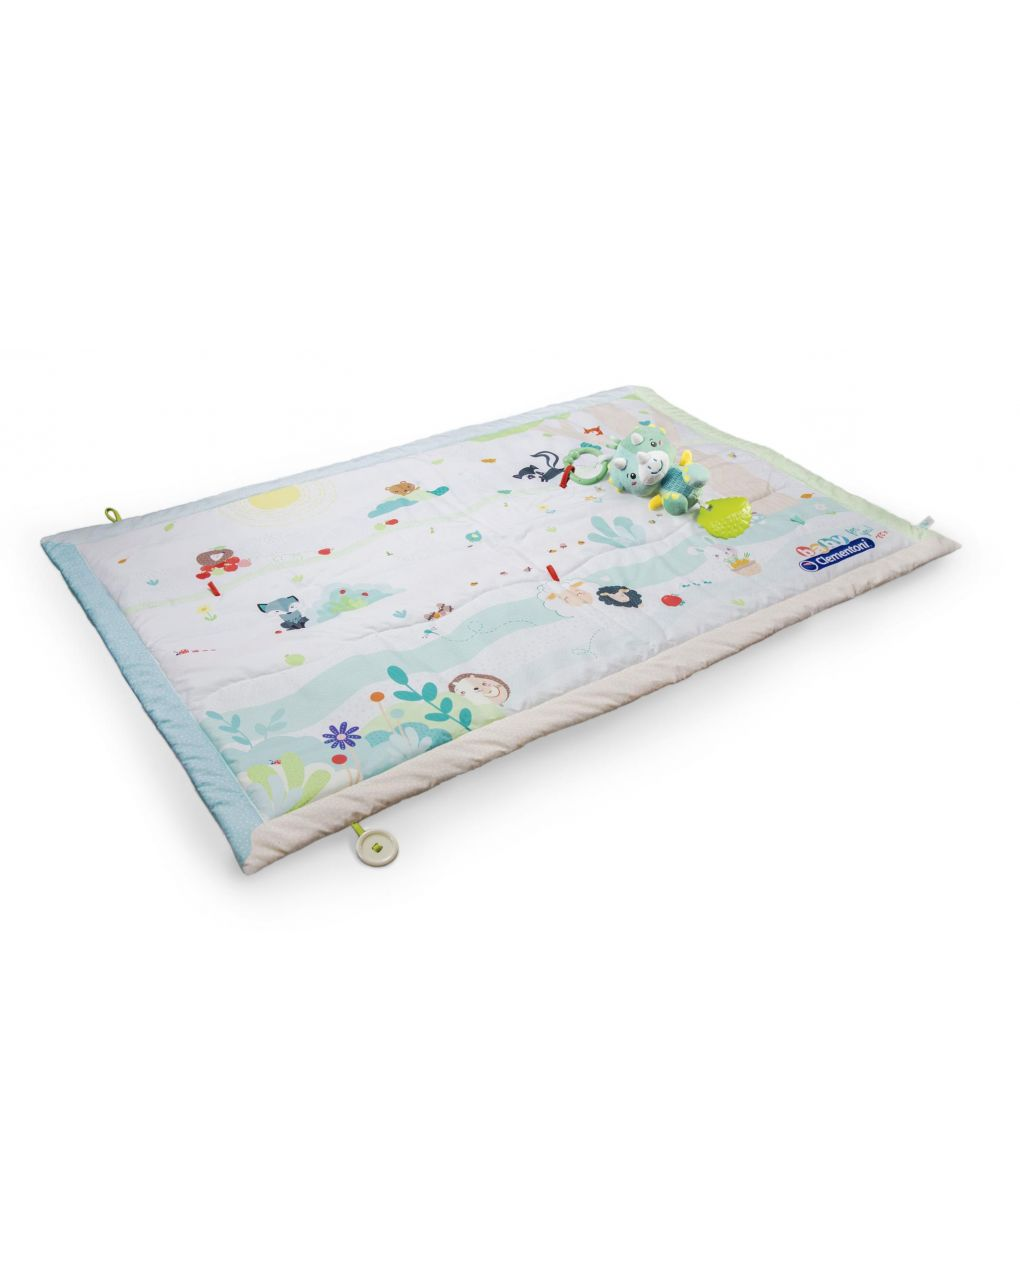 Baby clementoni - baby friends soft play mat - Clementoni